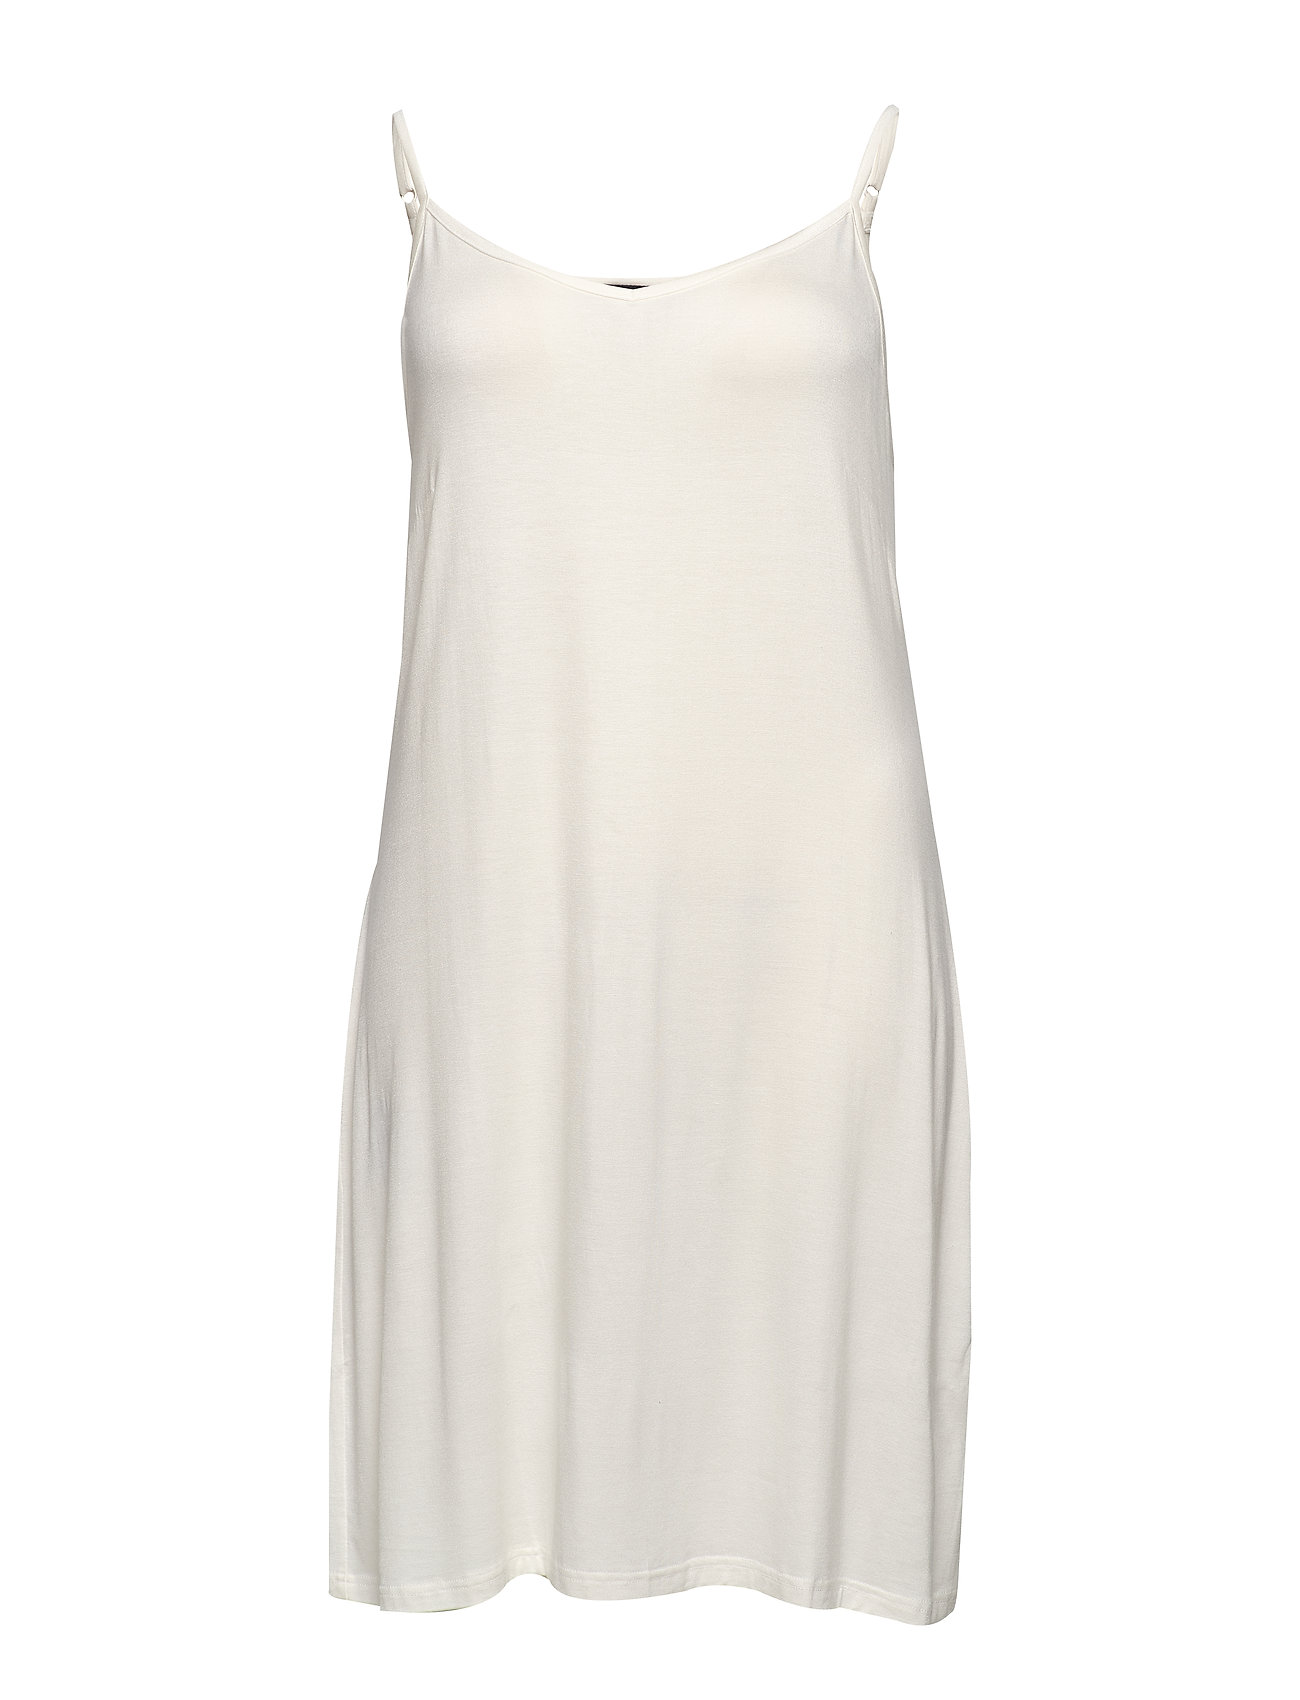 Zizzi MILLE, S/L, ABK UNDERDRESS - OFF-WHITE